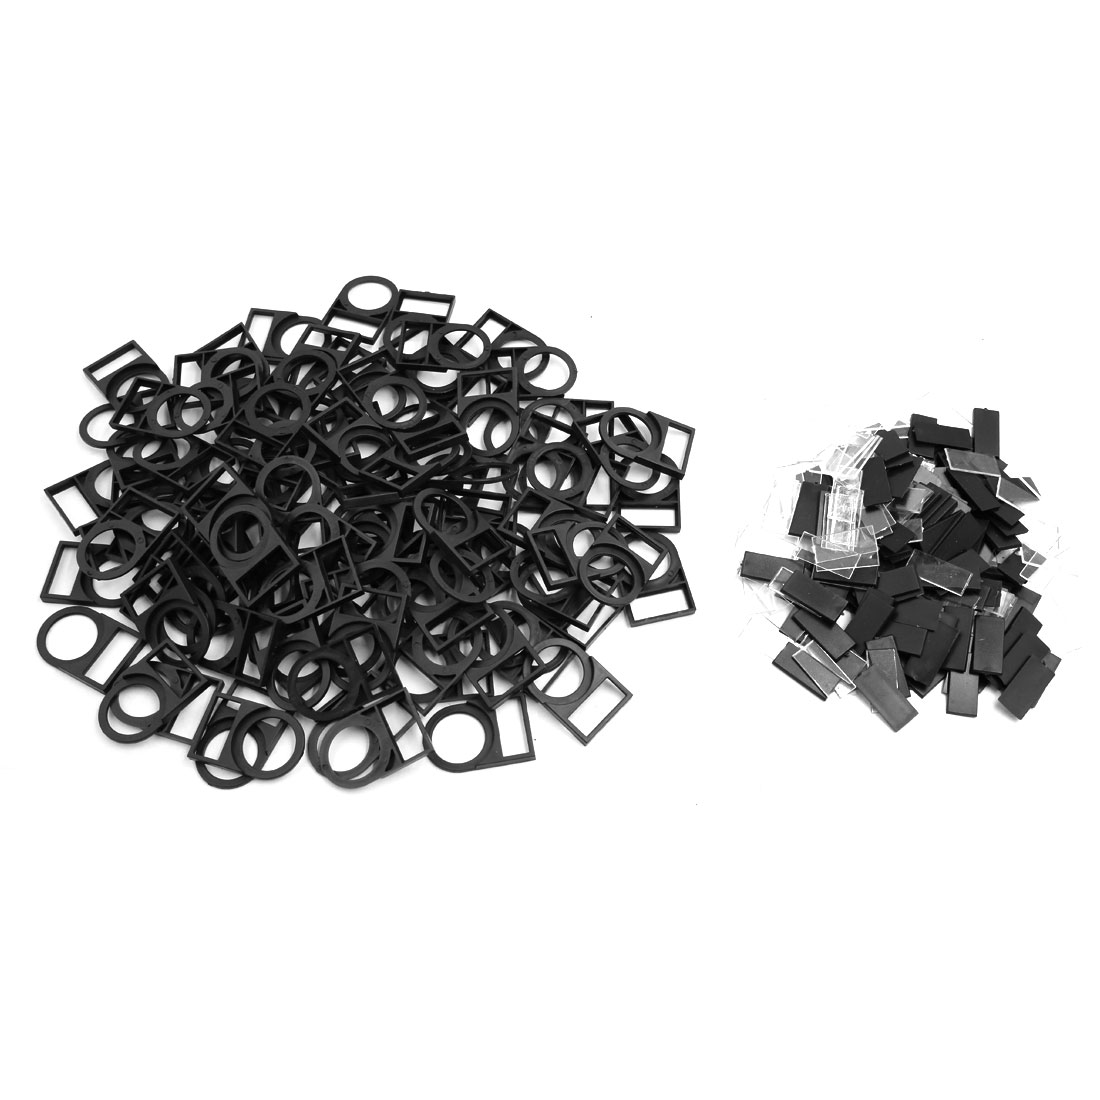 100pcs Black Plastic 22mm Dia Push Button Switch Protector Panel Label Frame